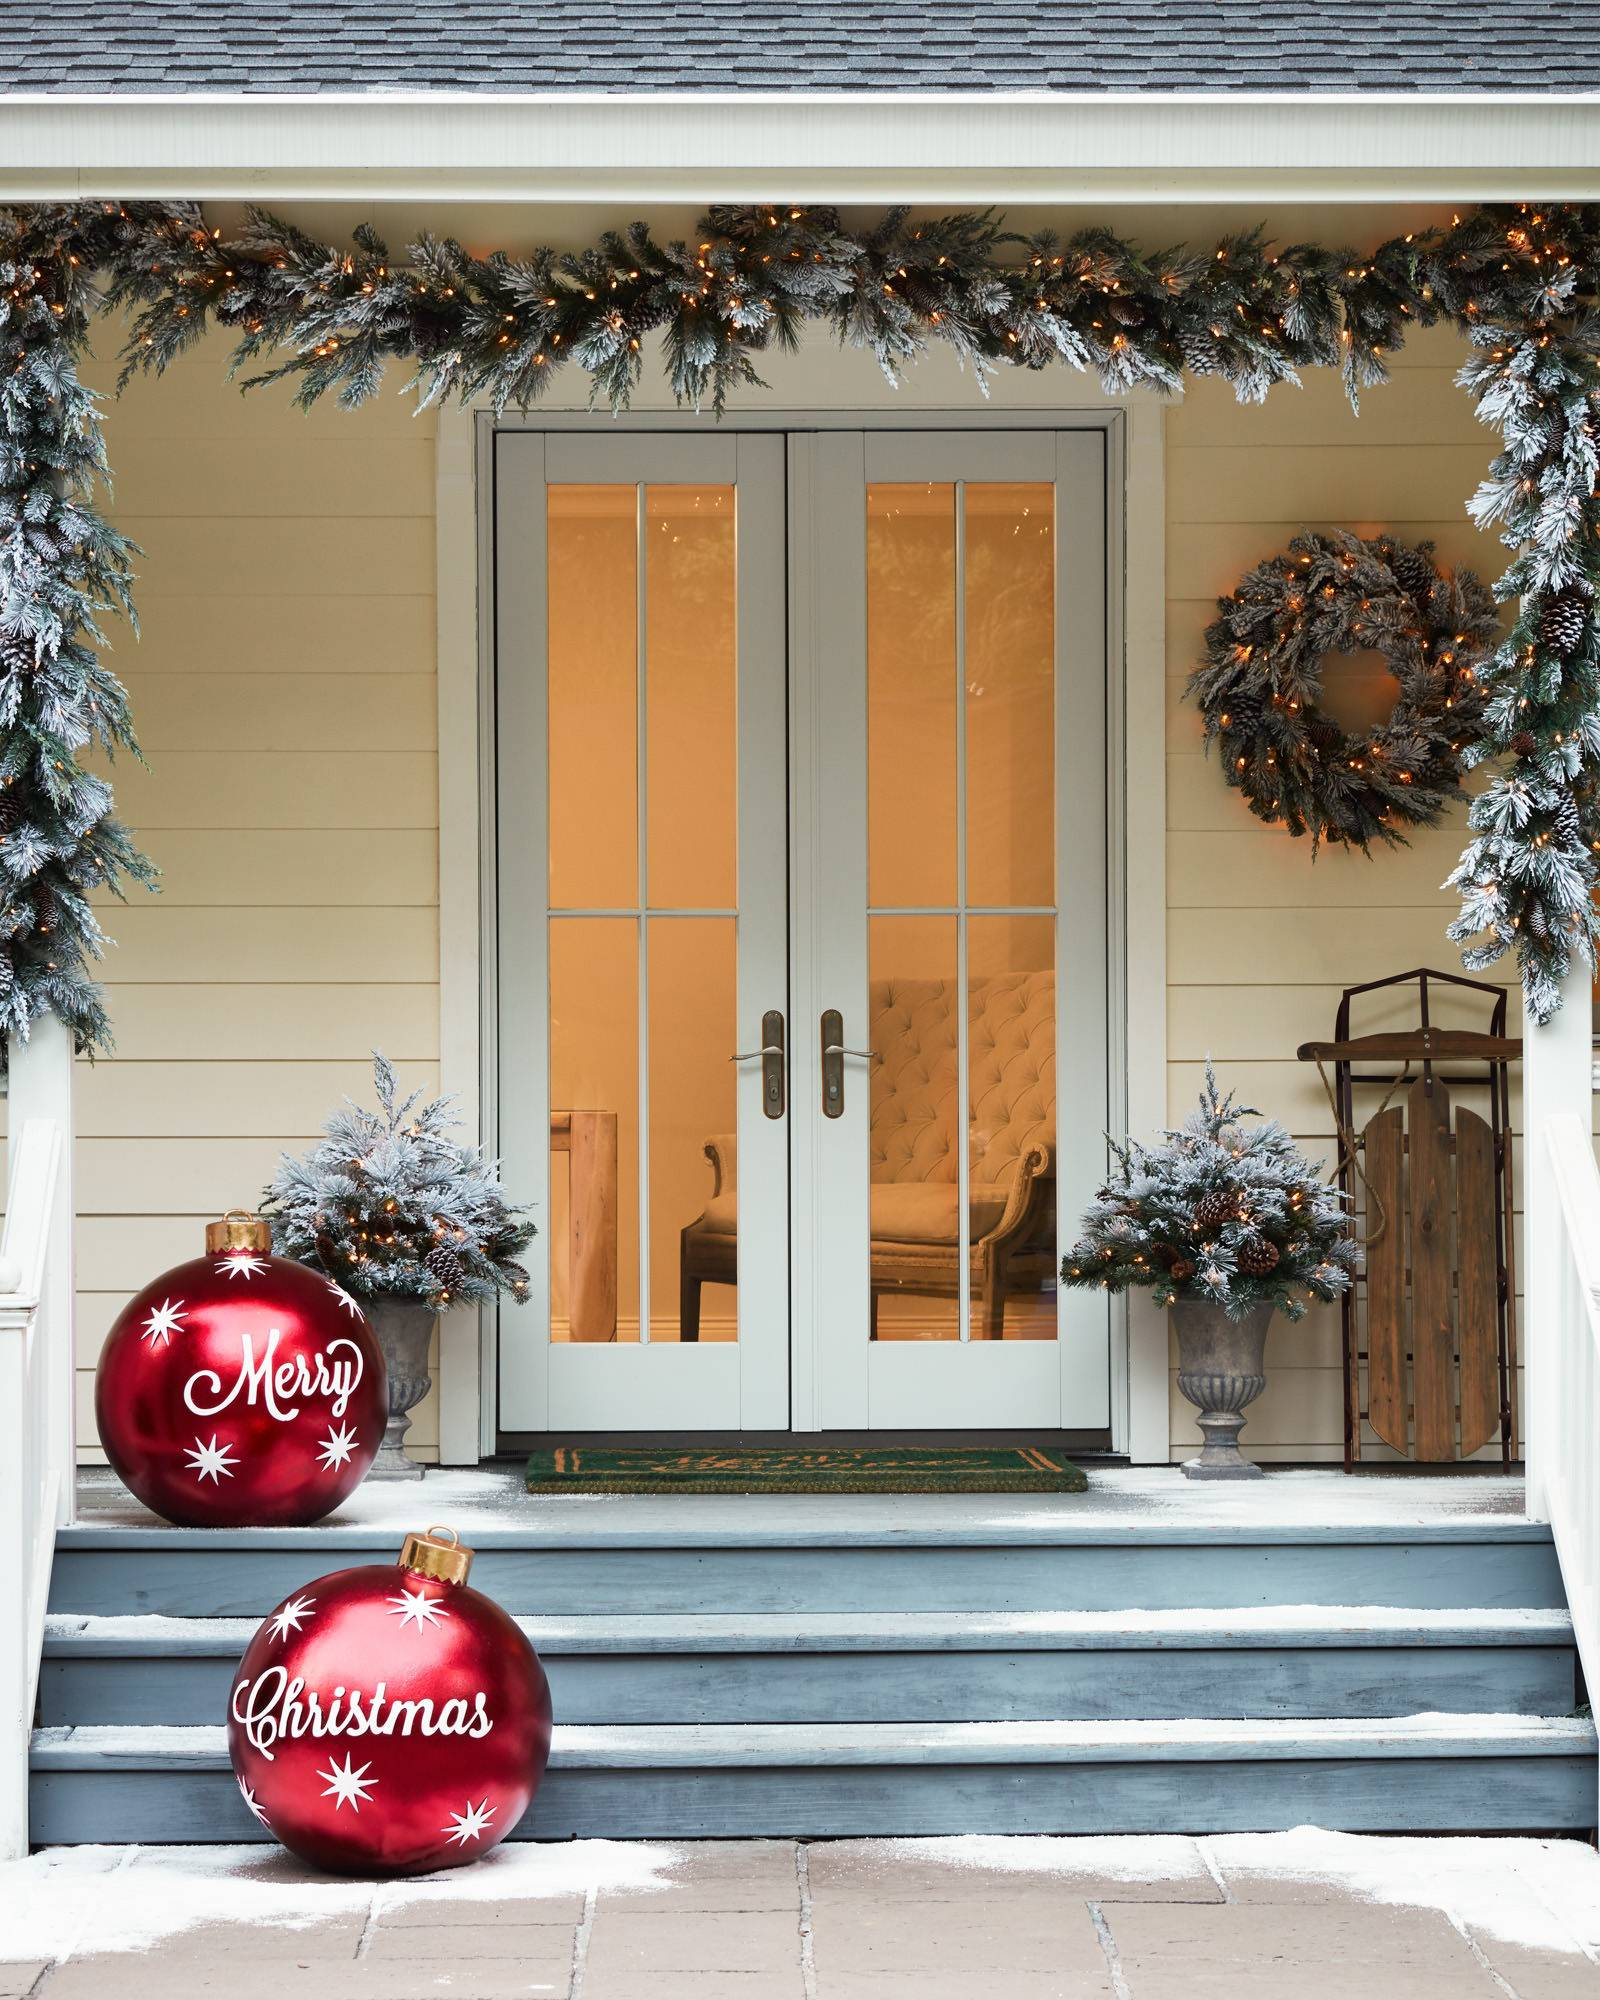 Merry Christmas Decorations Outdoor : Outdoor merry christmas ornaments balsam hill